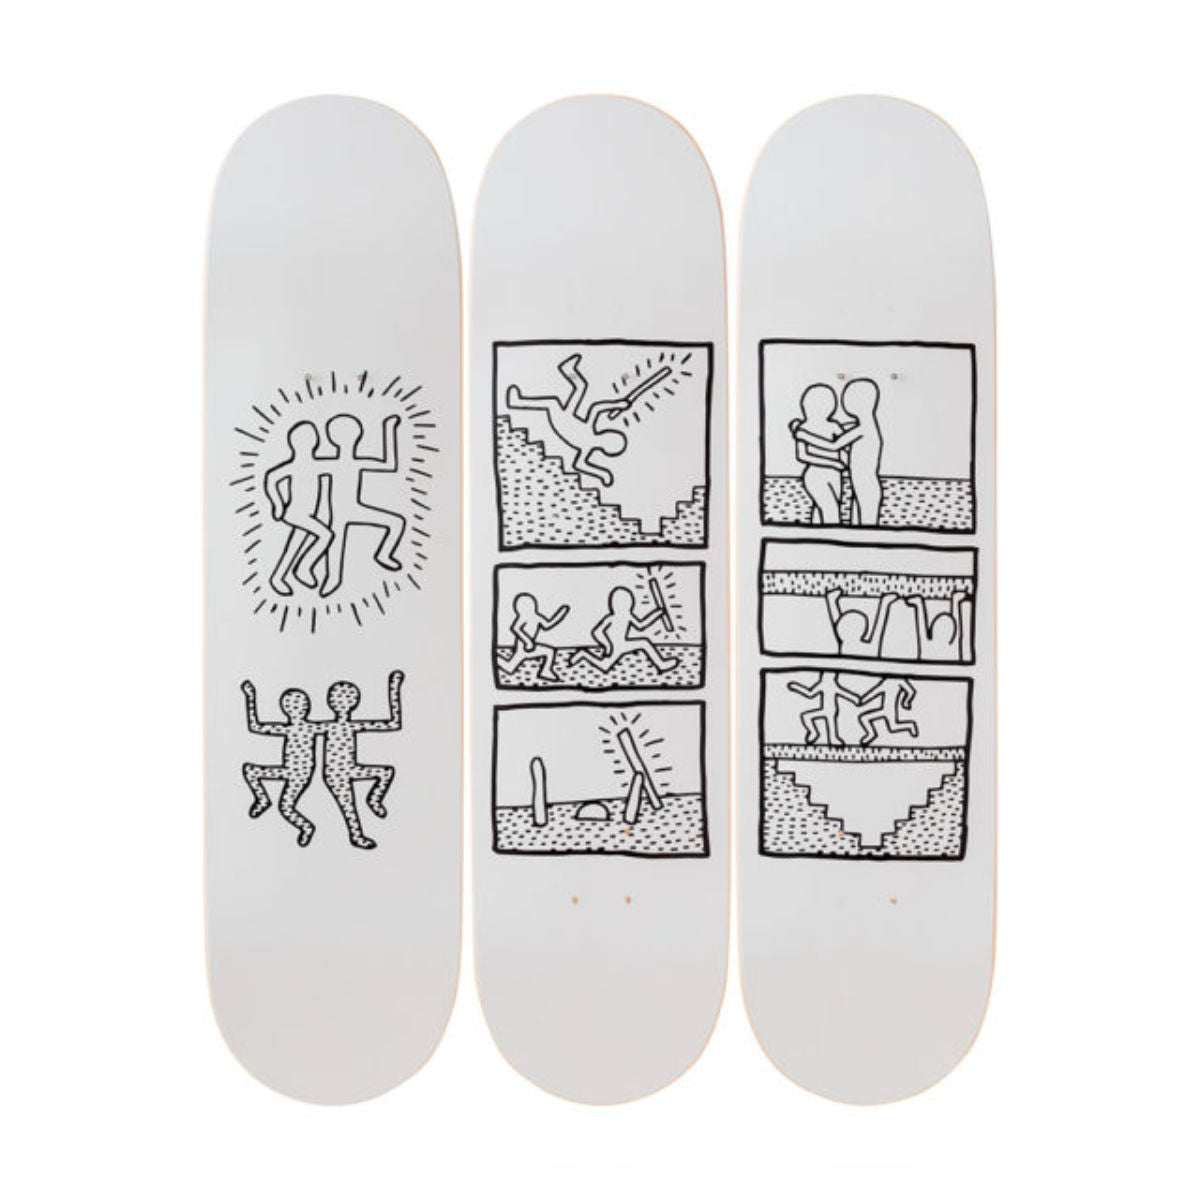 The Skateroom skateboard, Keith Haring Untitled (1981)